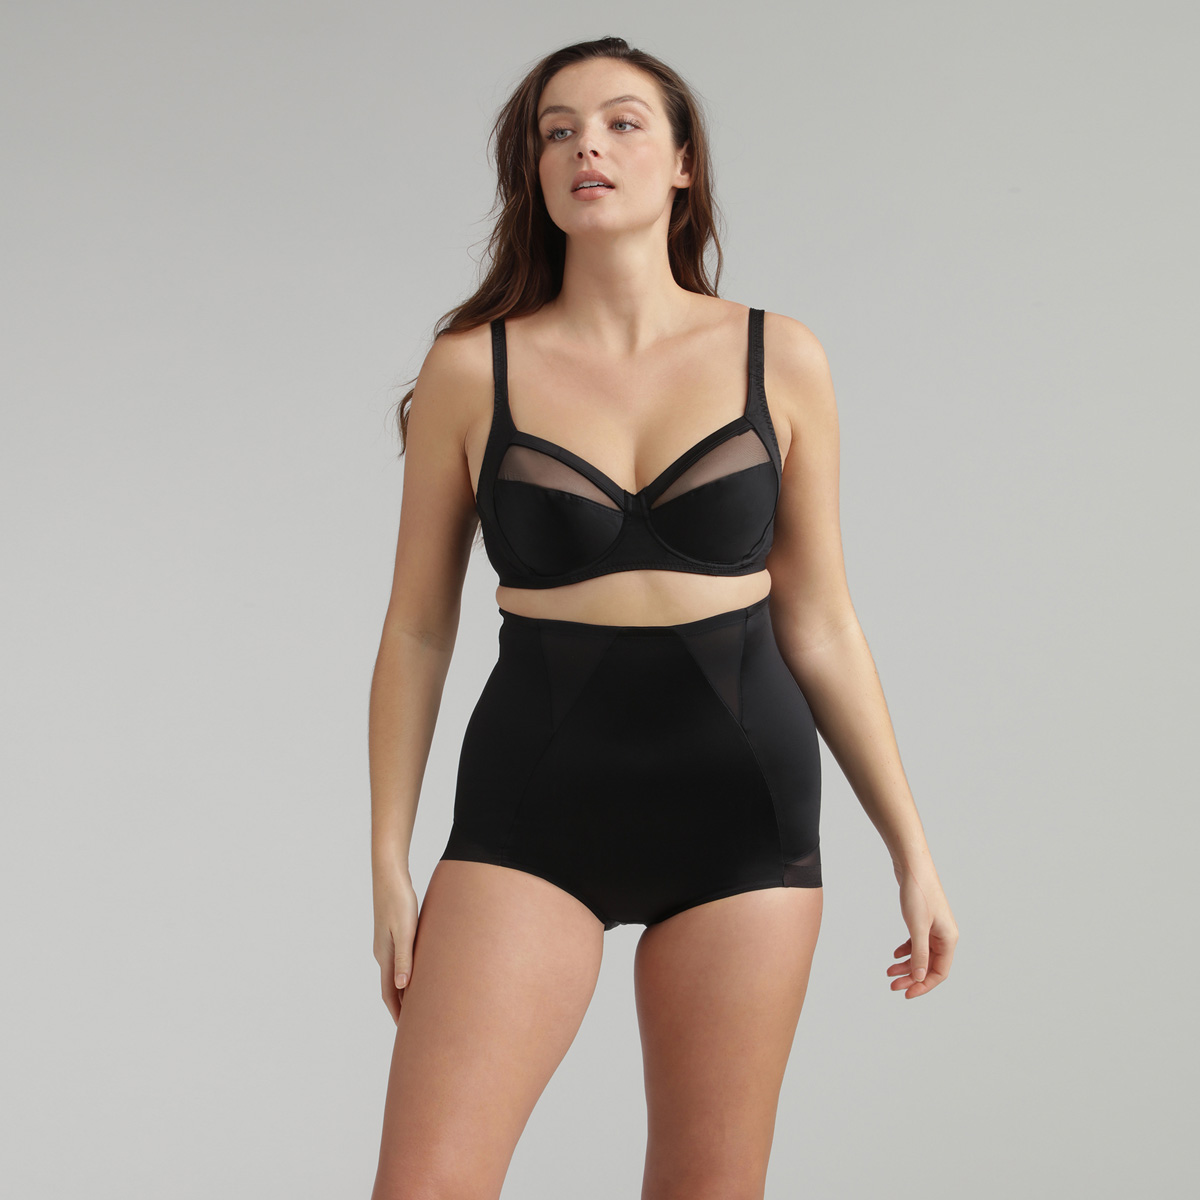 High-Waisted Girdle in Black – Perfect Silhouette, , PLAYTEX